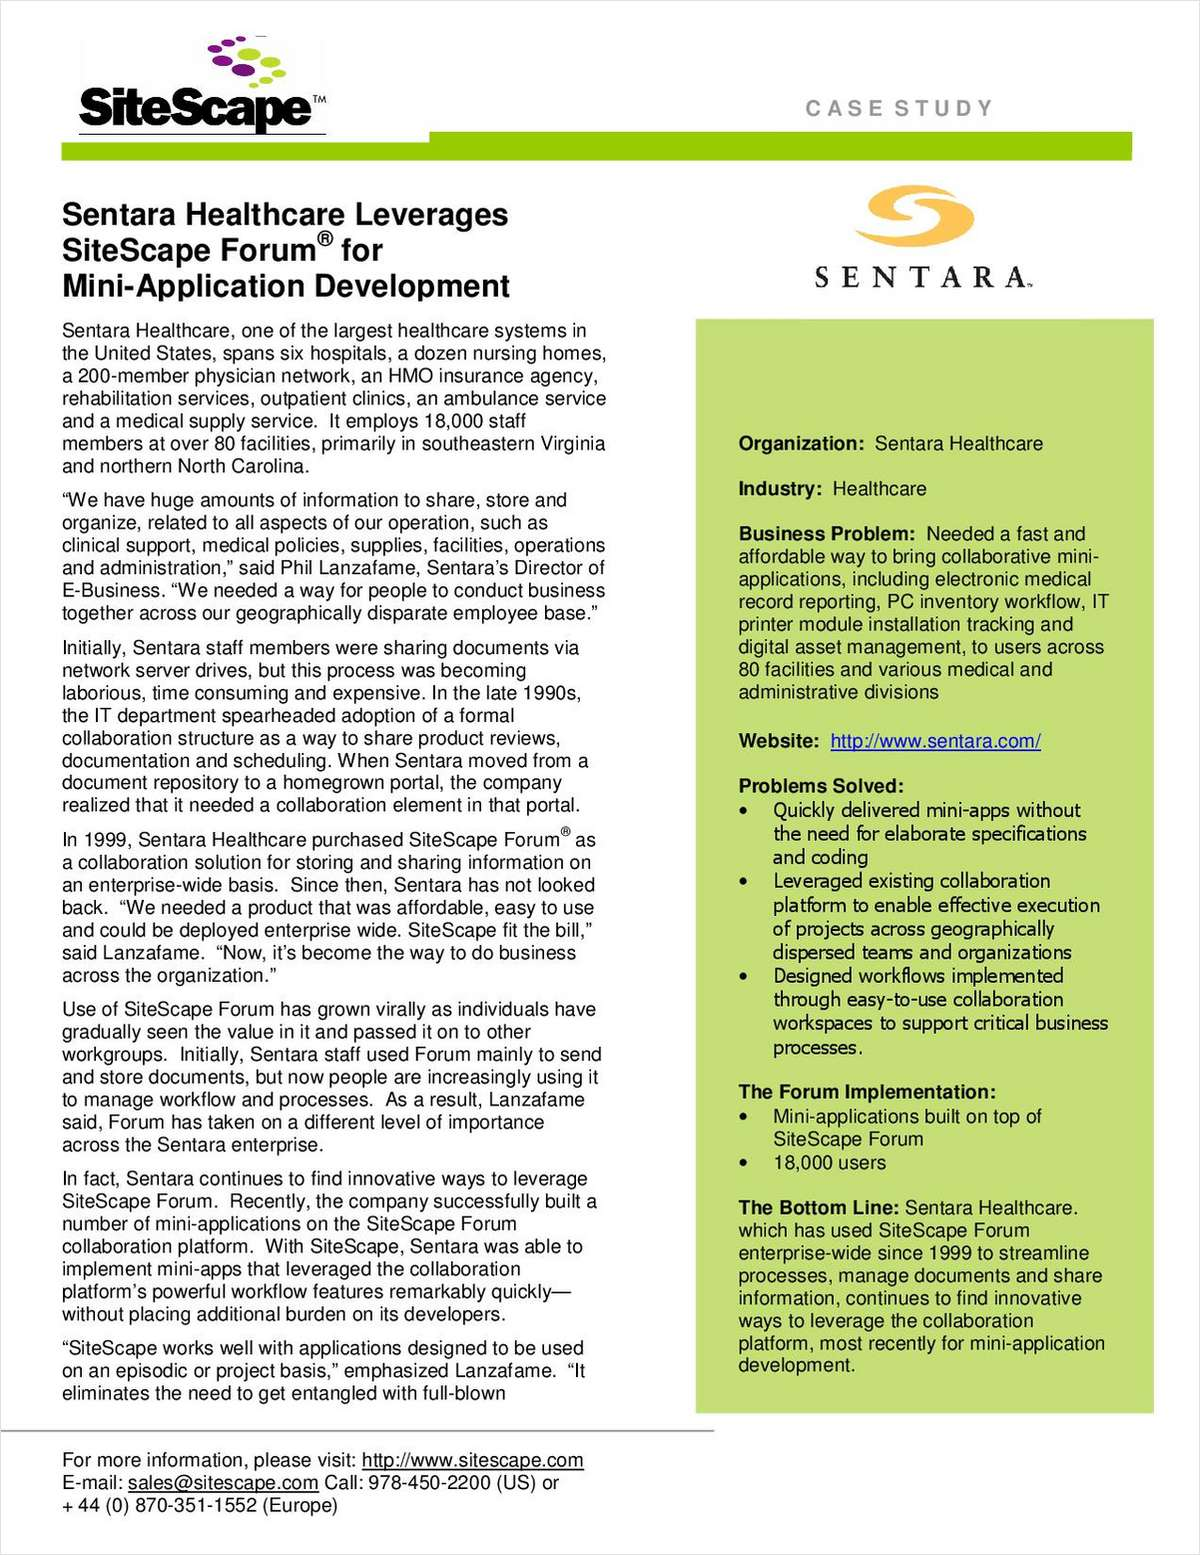 Sentara Healthcare Leverages SiteScape Forum for Mini-Application Development